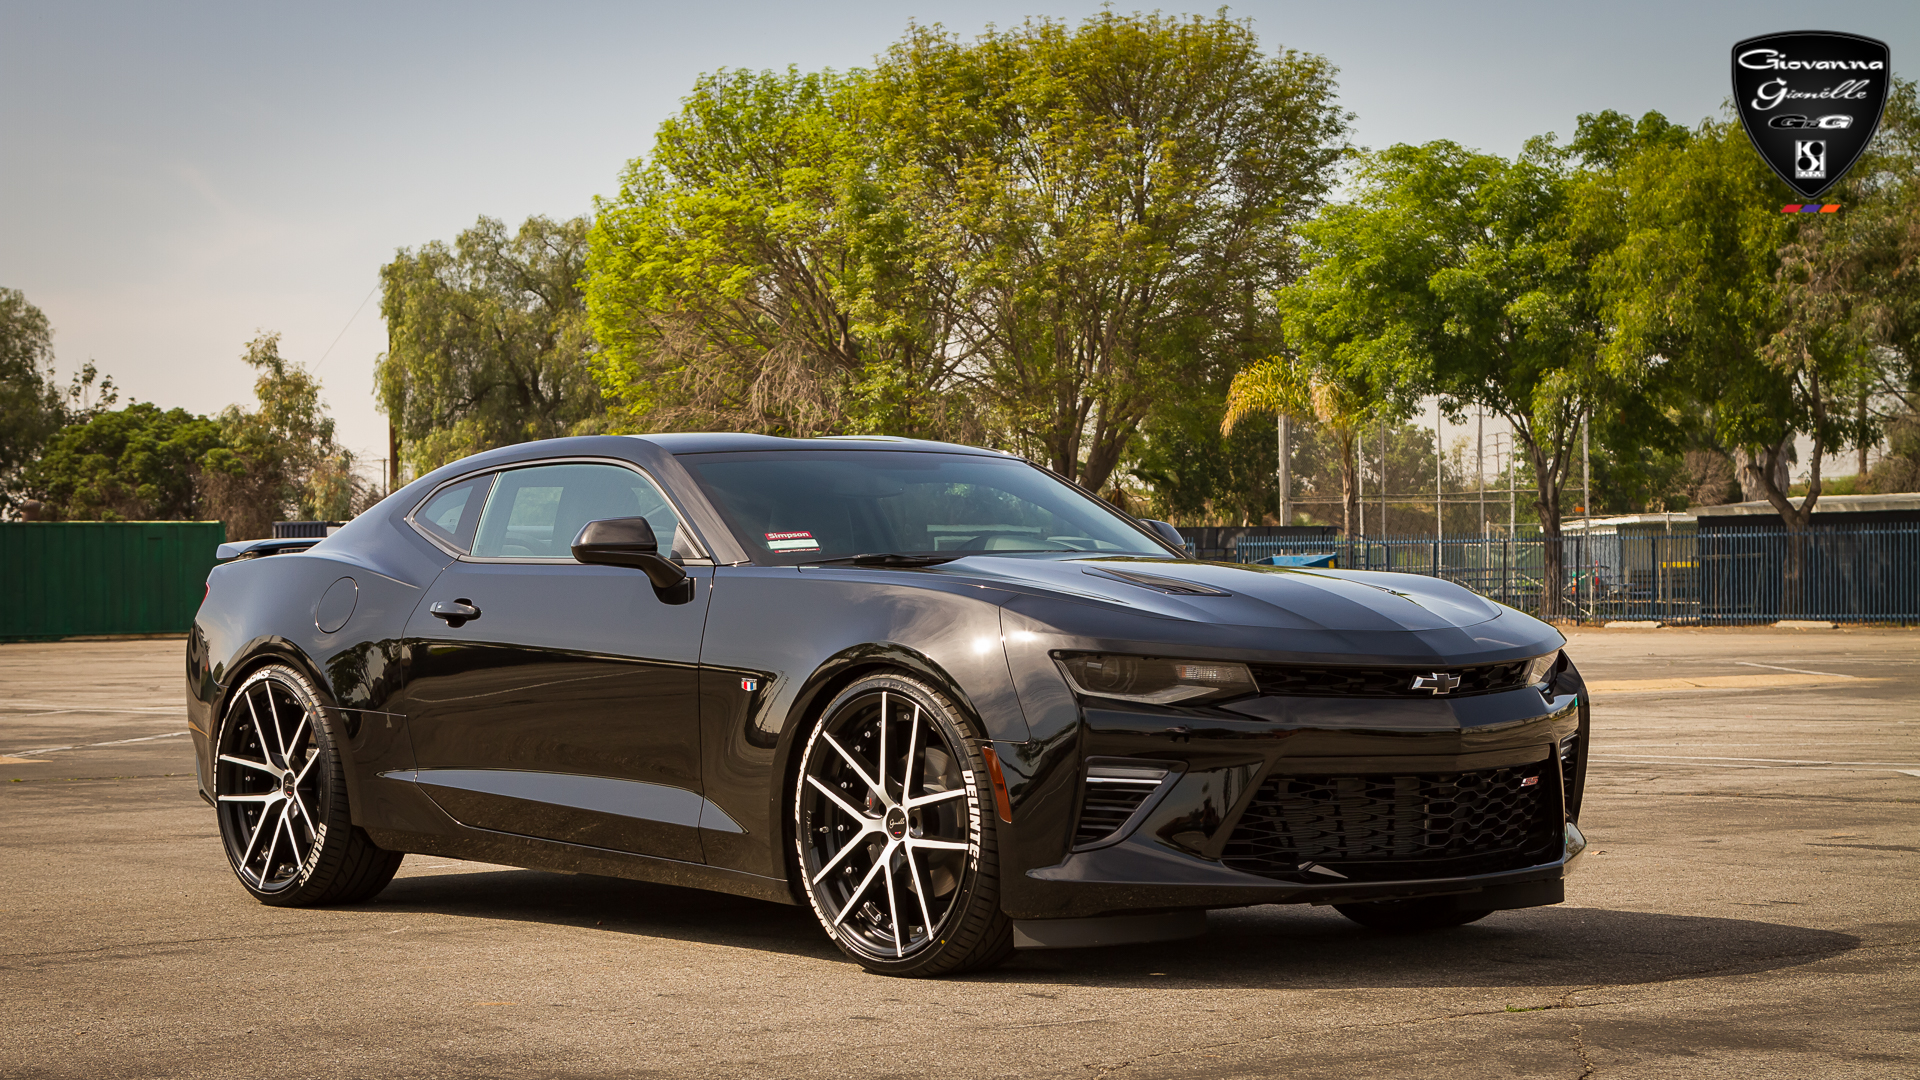 Lowrider Rims And Tires >> 2016 Chevy Camaro SS On 22-Inch Gianelle Wheels - Rides Magazine